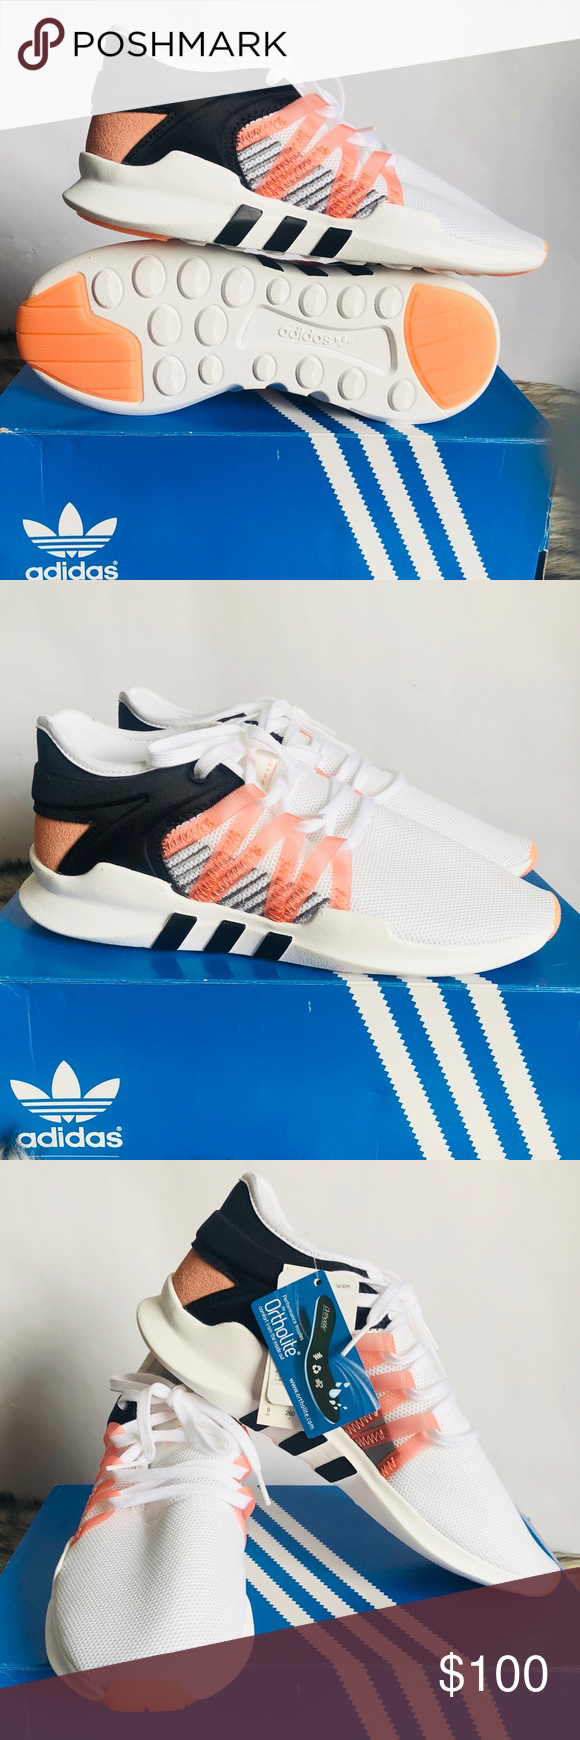 8cf358b38d05 Adidas Originals Women s EQT RACING ADV  NWT  No Box  Originals CQ2156   Footwear White  Chalk Coral - Core Black  Performance Insoles by Ortholite  adidas ...